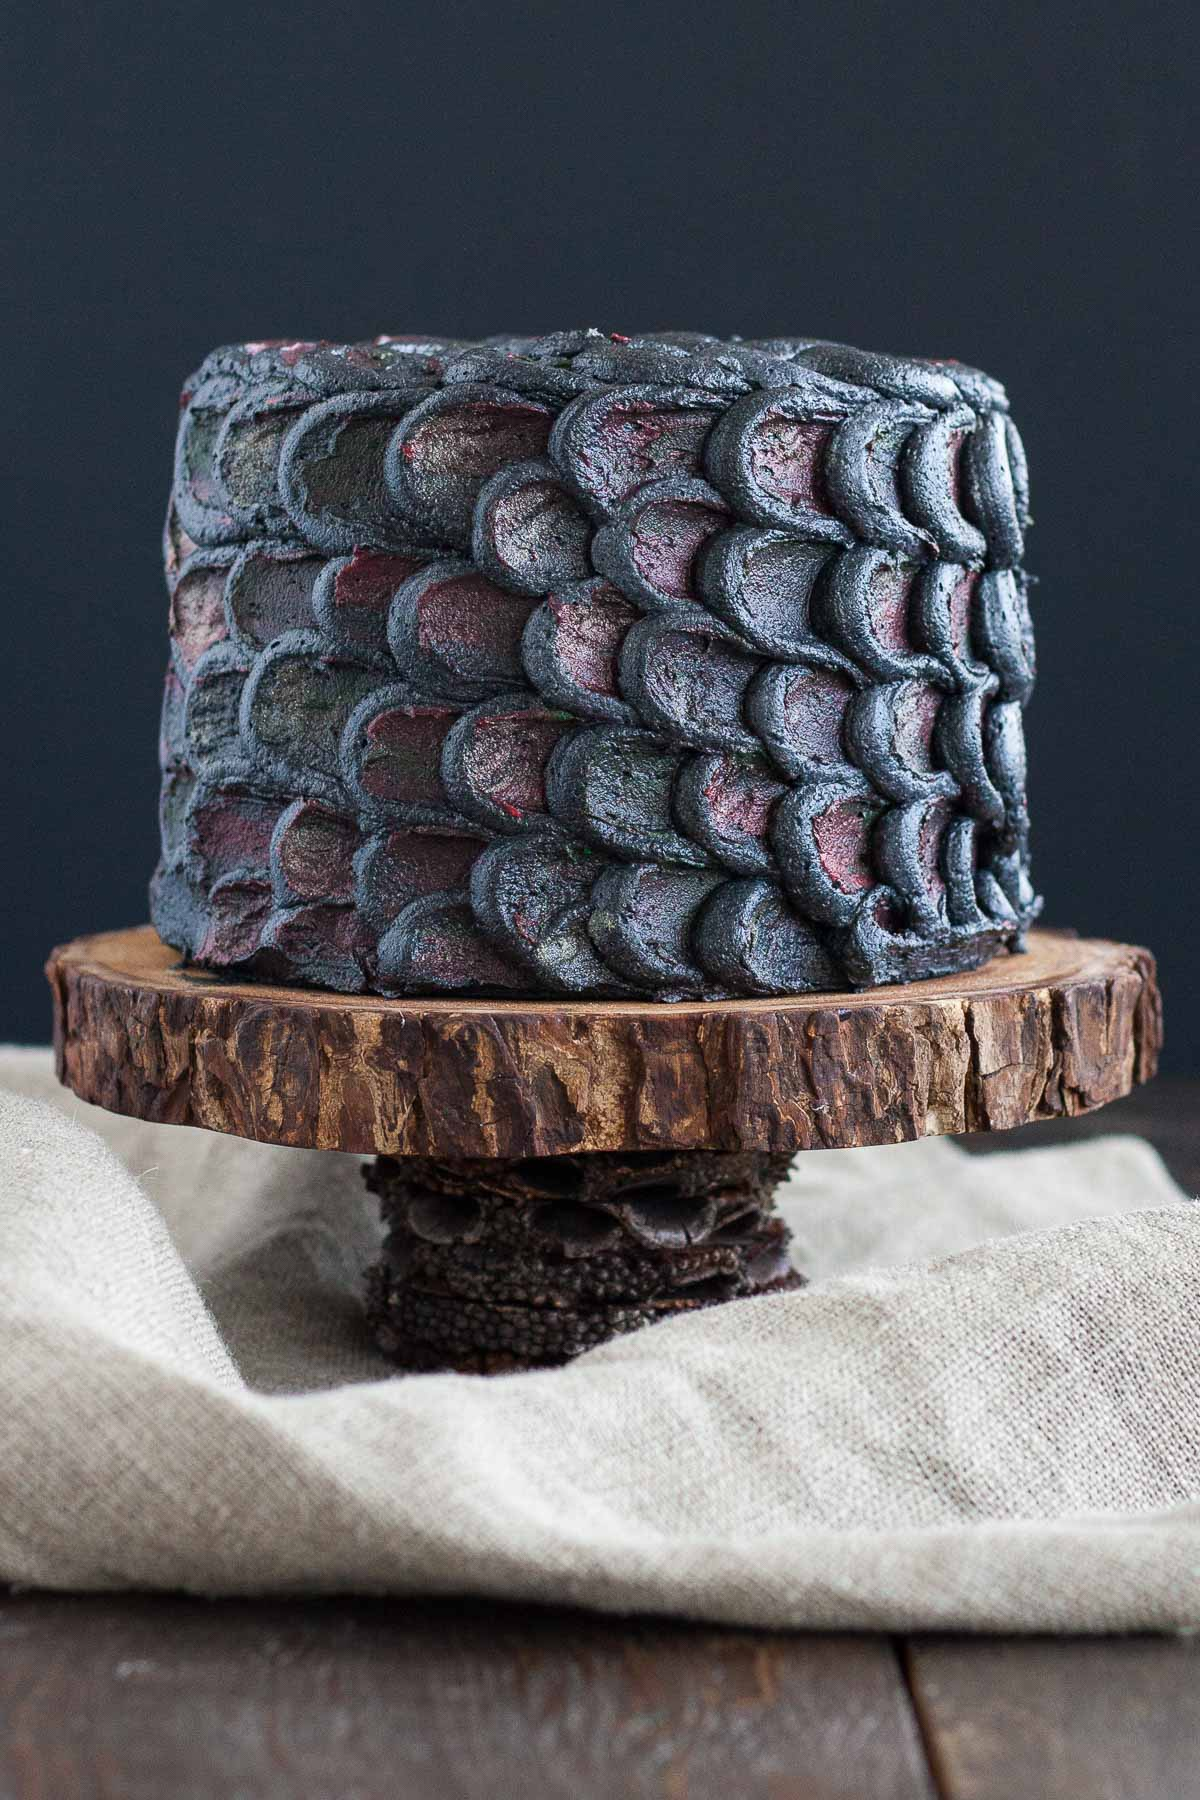 Game of thrones chair cake - Dragon Scale Cake For Game Of Thrones Baby Shower